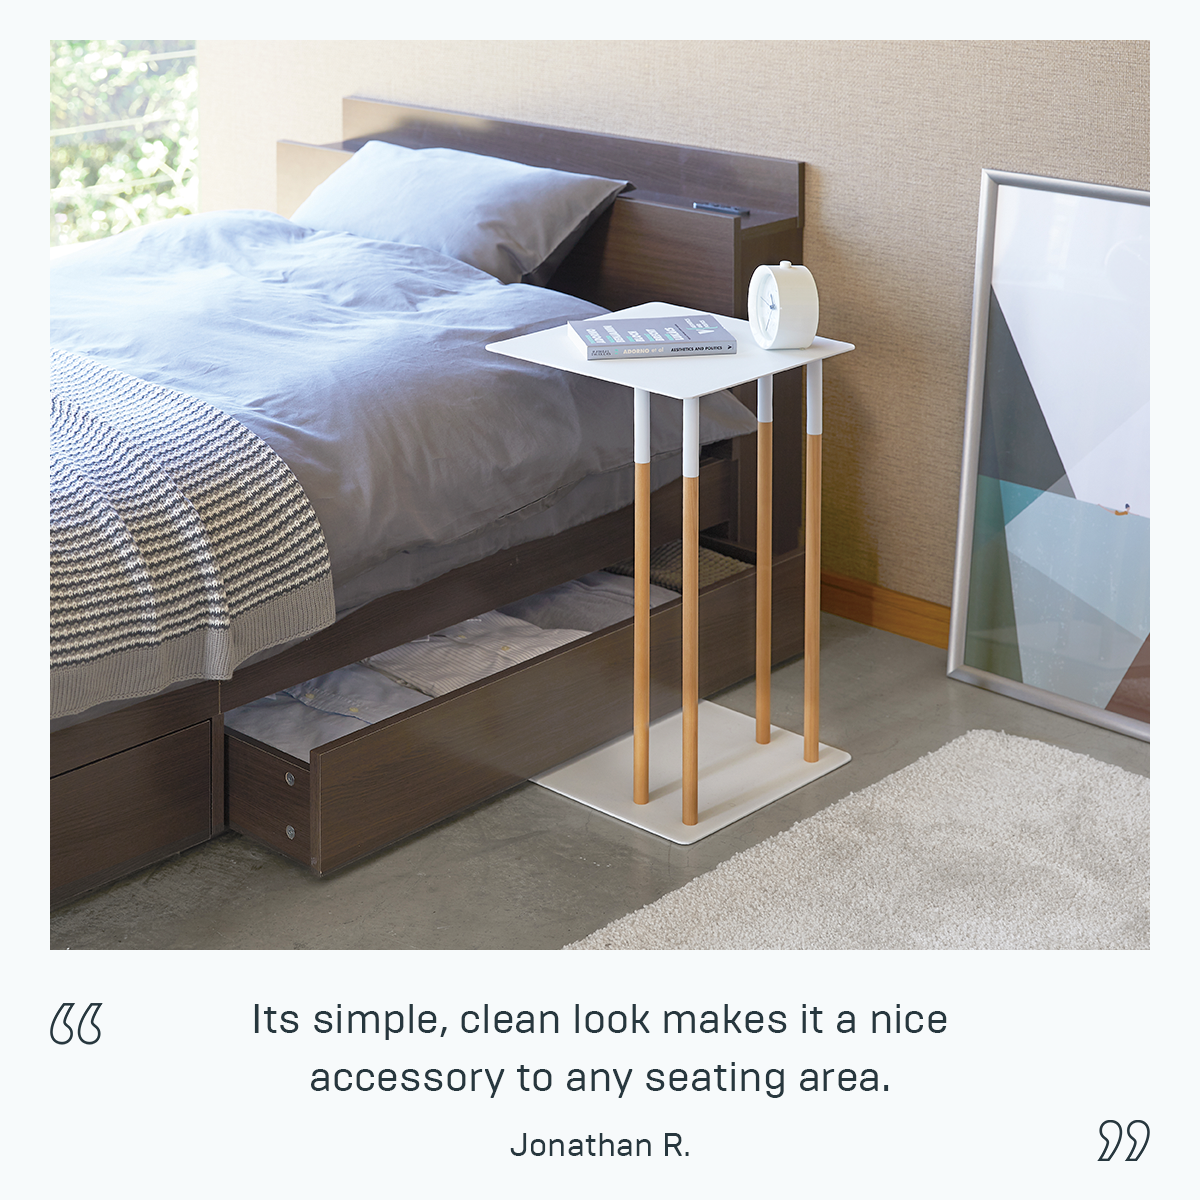 The Sliding Side Table's unique shape allows the table to be pulled close to your couch and other furniture, making a comfortable surface for placing a book or laptop. The wide base of the table adds stability to the structure and allows you to simply slide the table into position.